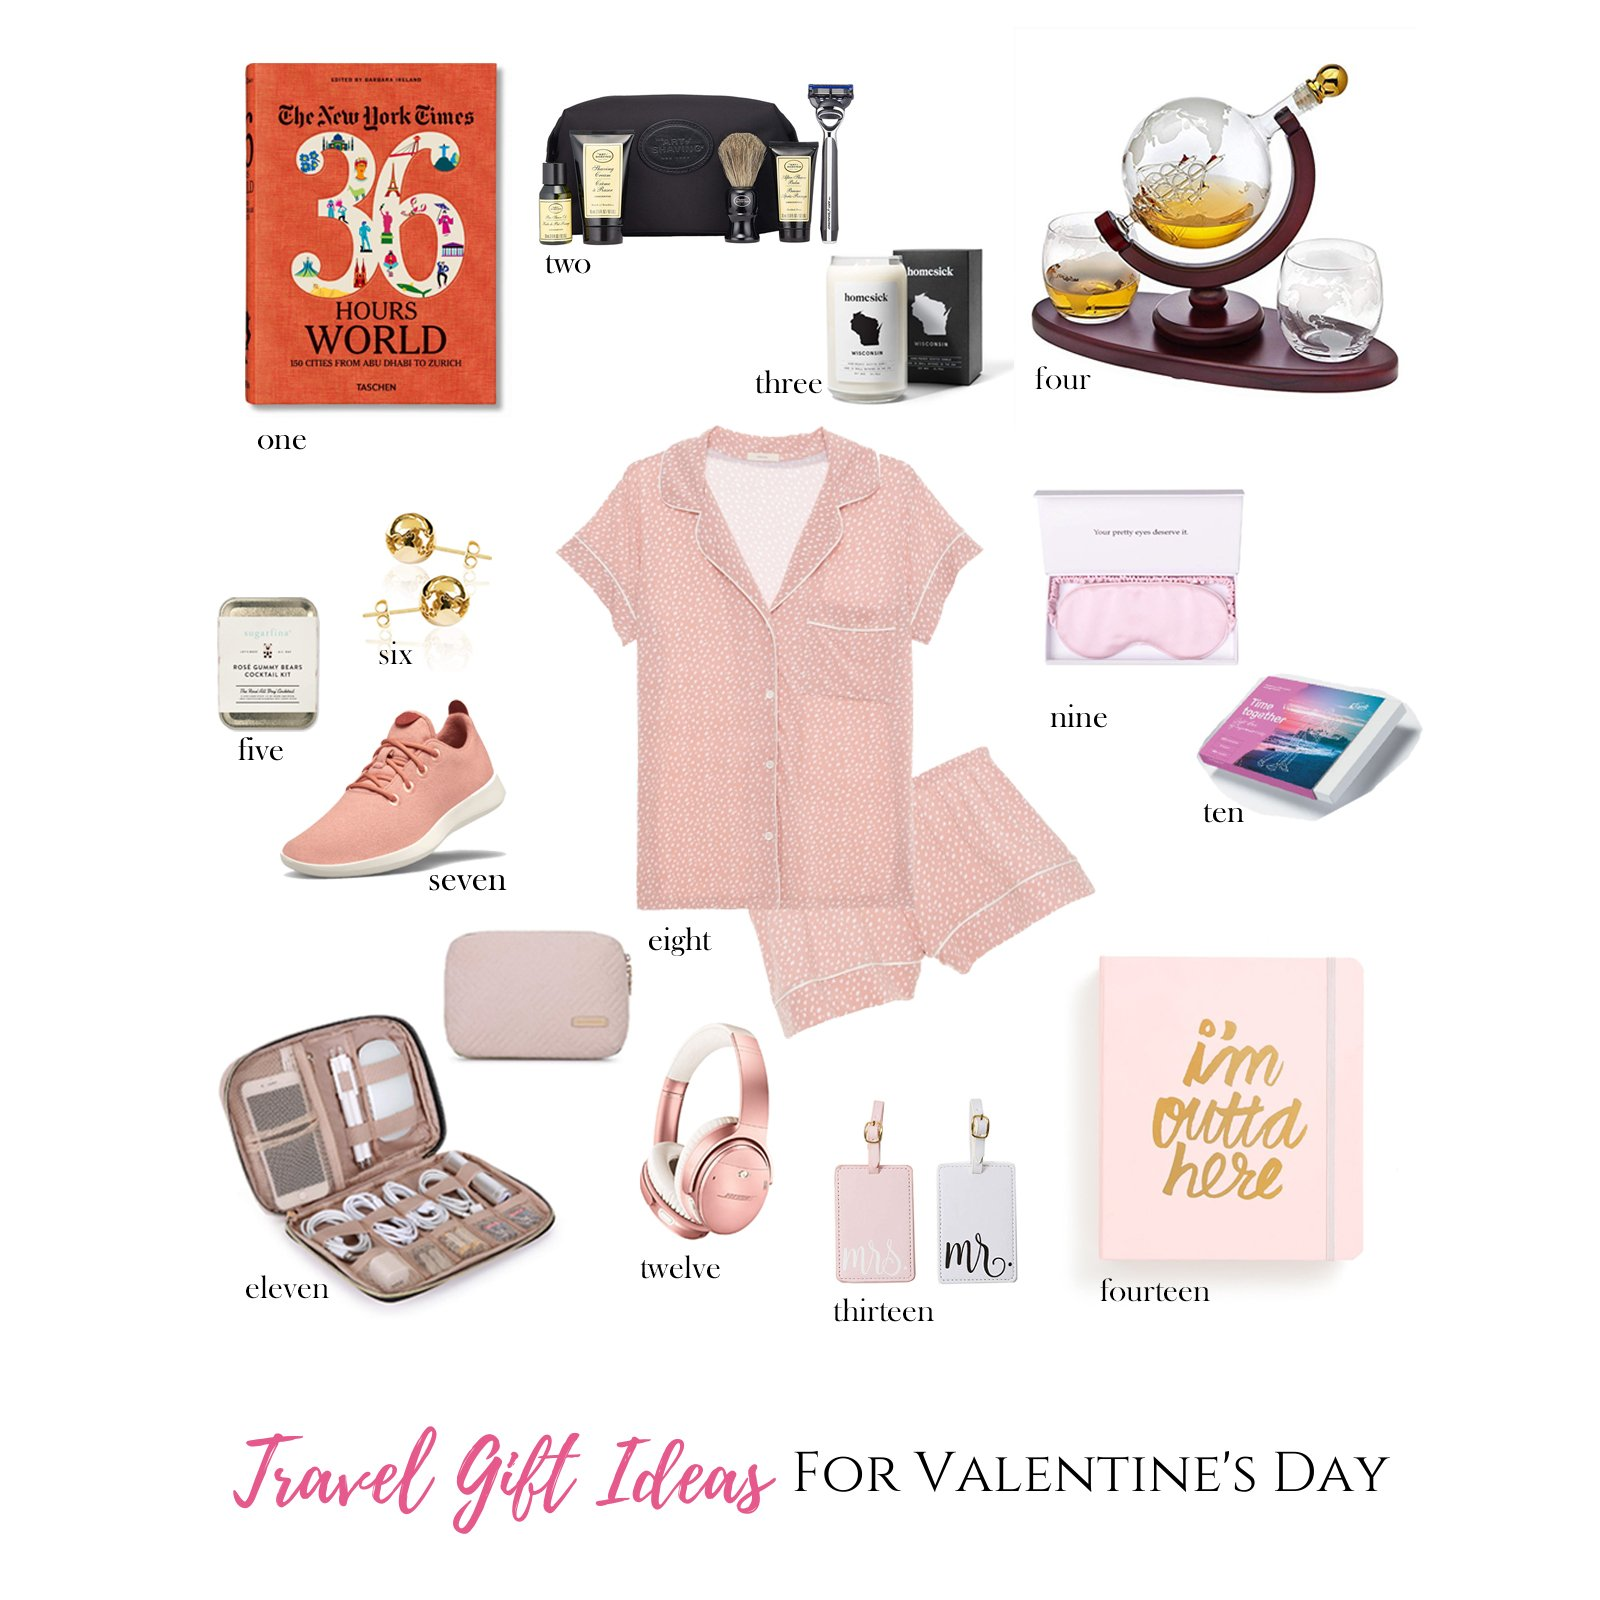 Looking for travel-themed gift ideas for the globetrotter who has your heart this Valentine's Day? I've got you covered with my Valentine's Day Gift Guide for Travelers, a curated list of the most romantic travel gift ideas for adventurous souls.